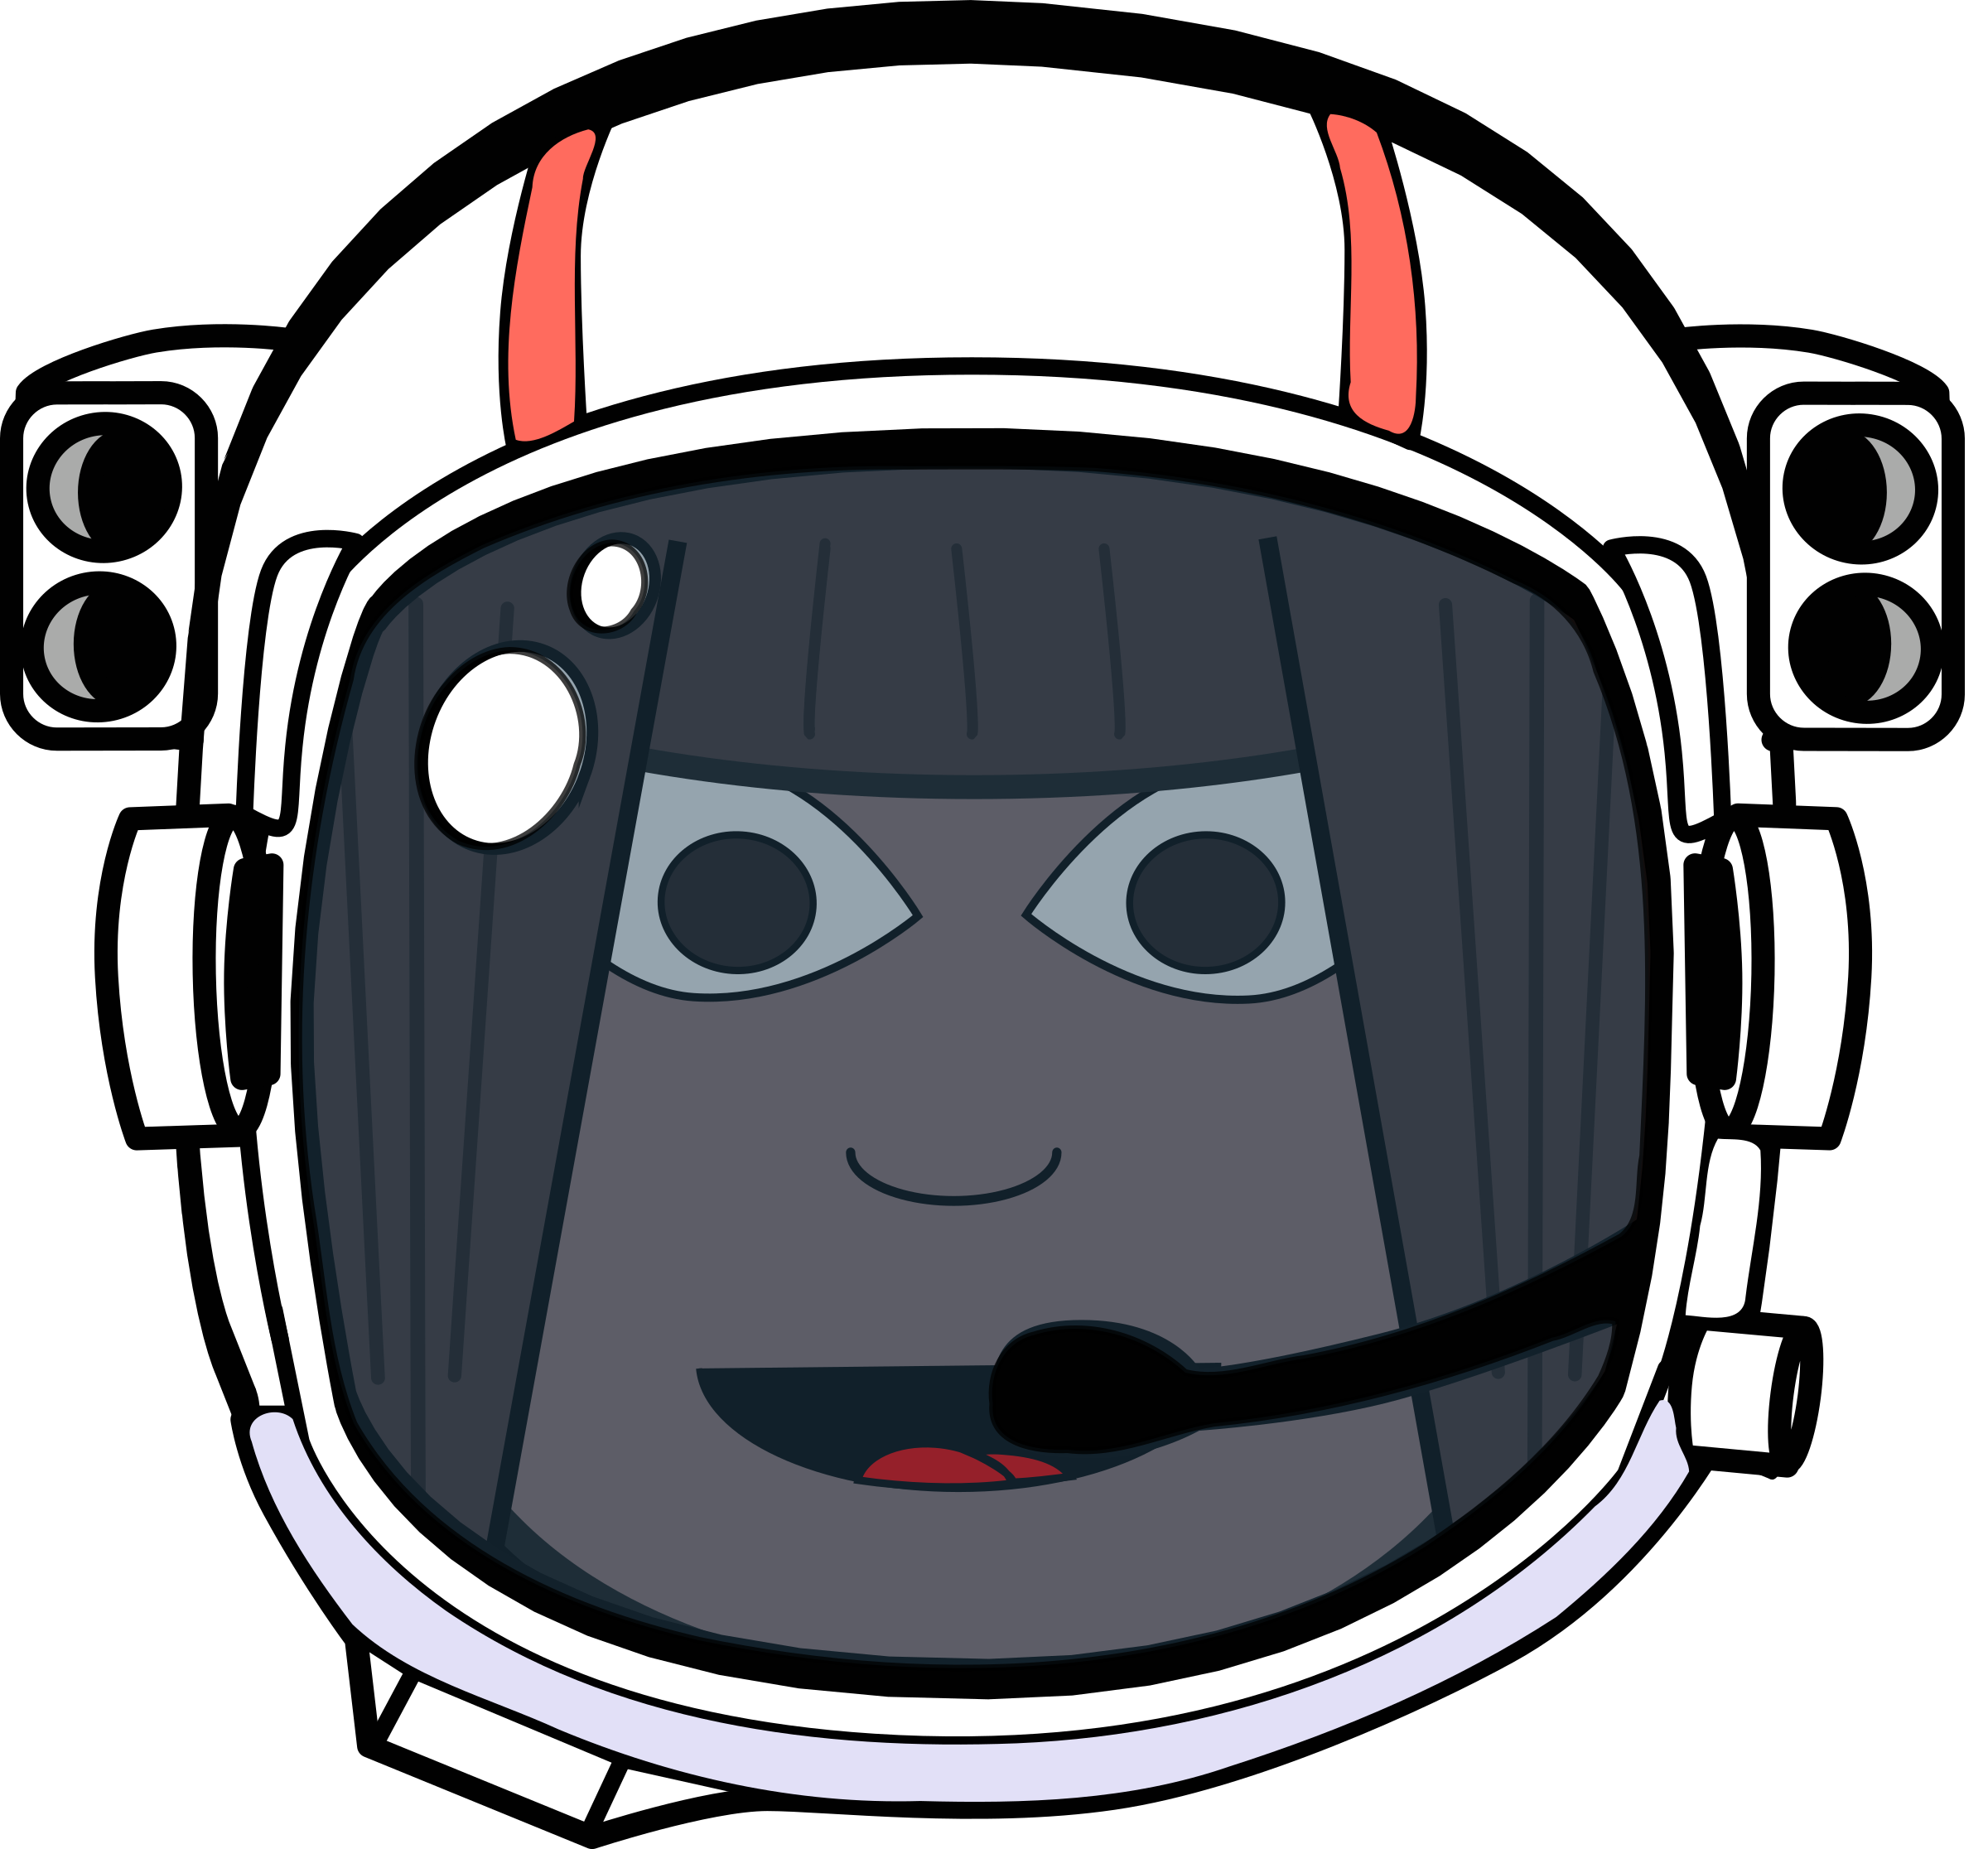 Girl icons png free. Galaxy clipart space scene